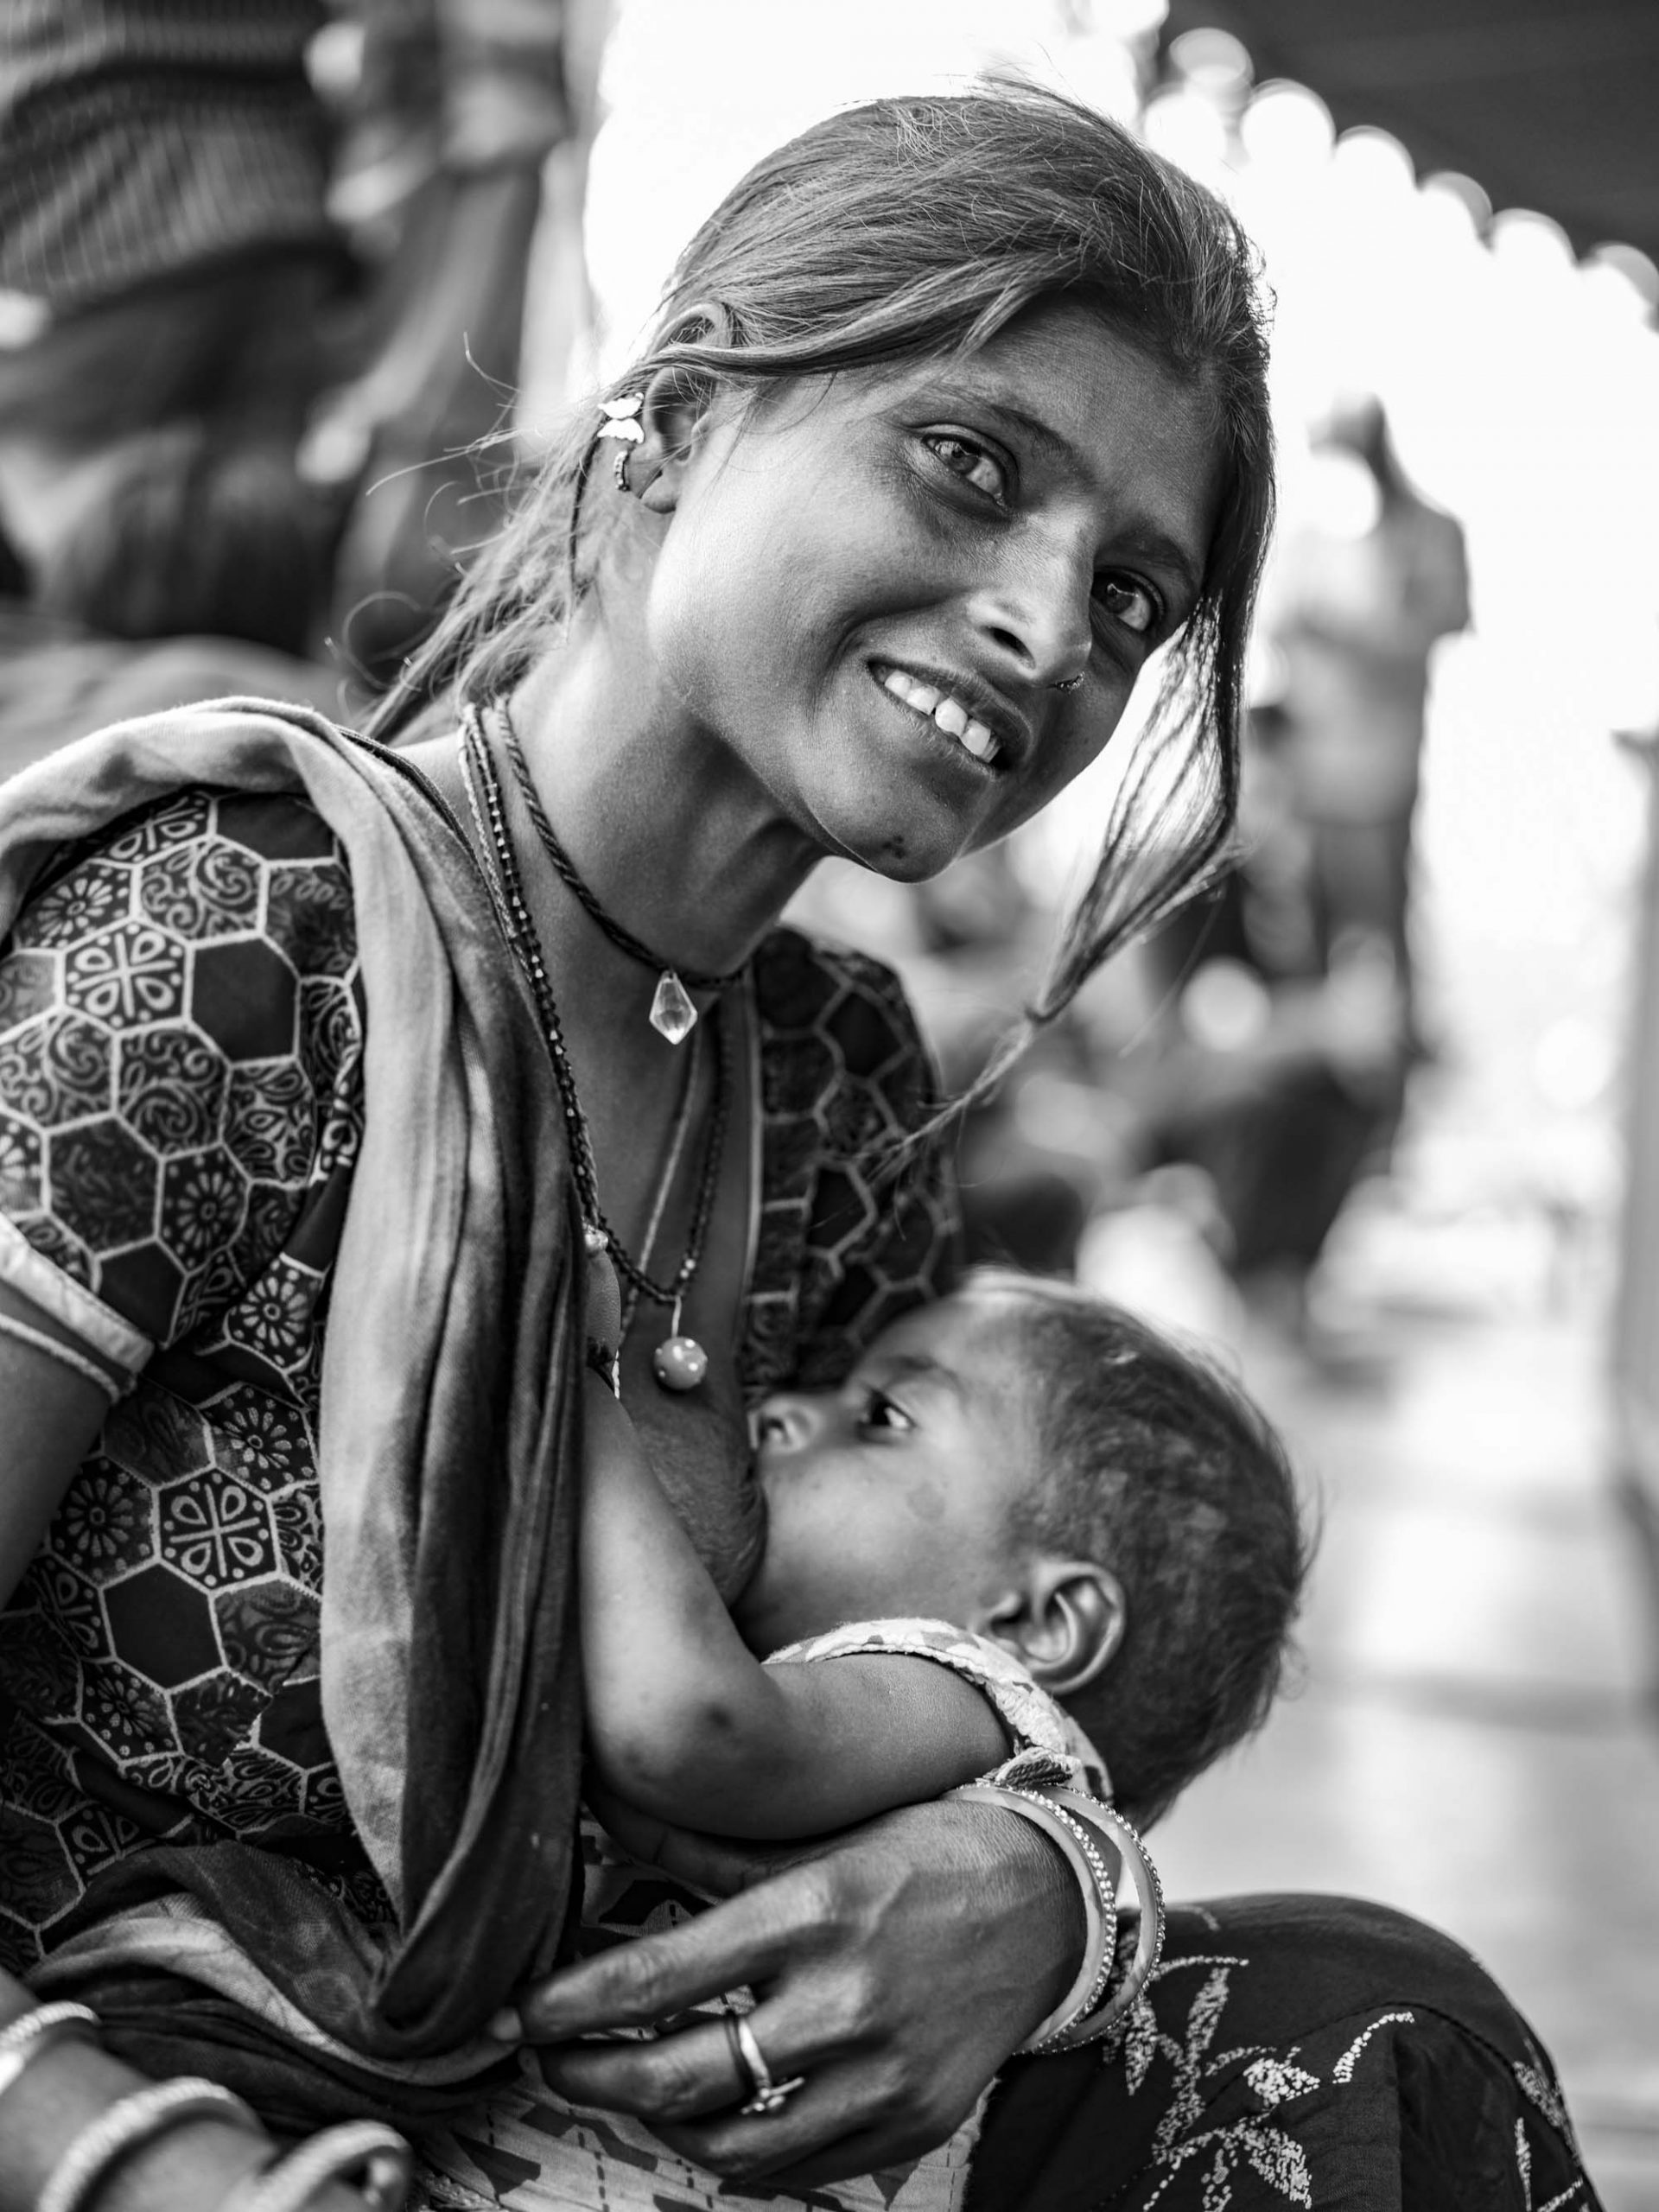 mother giving milk Gypsy Kalbelia tribe nomad Rajasthan India Documentary Photography Jose Jeuland Photographer print fine art